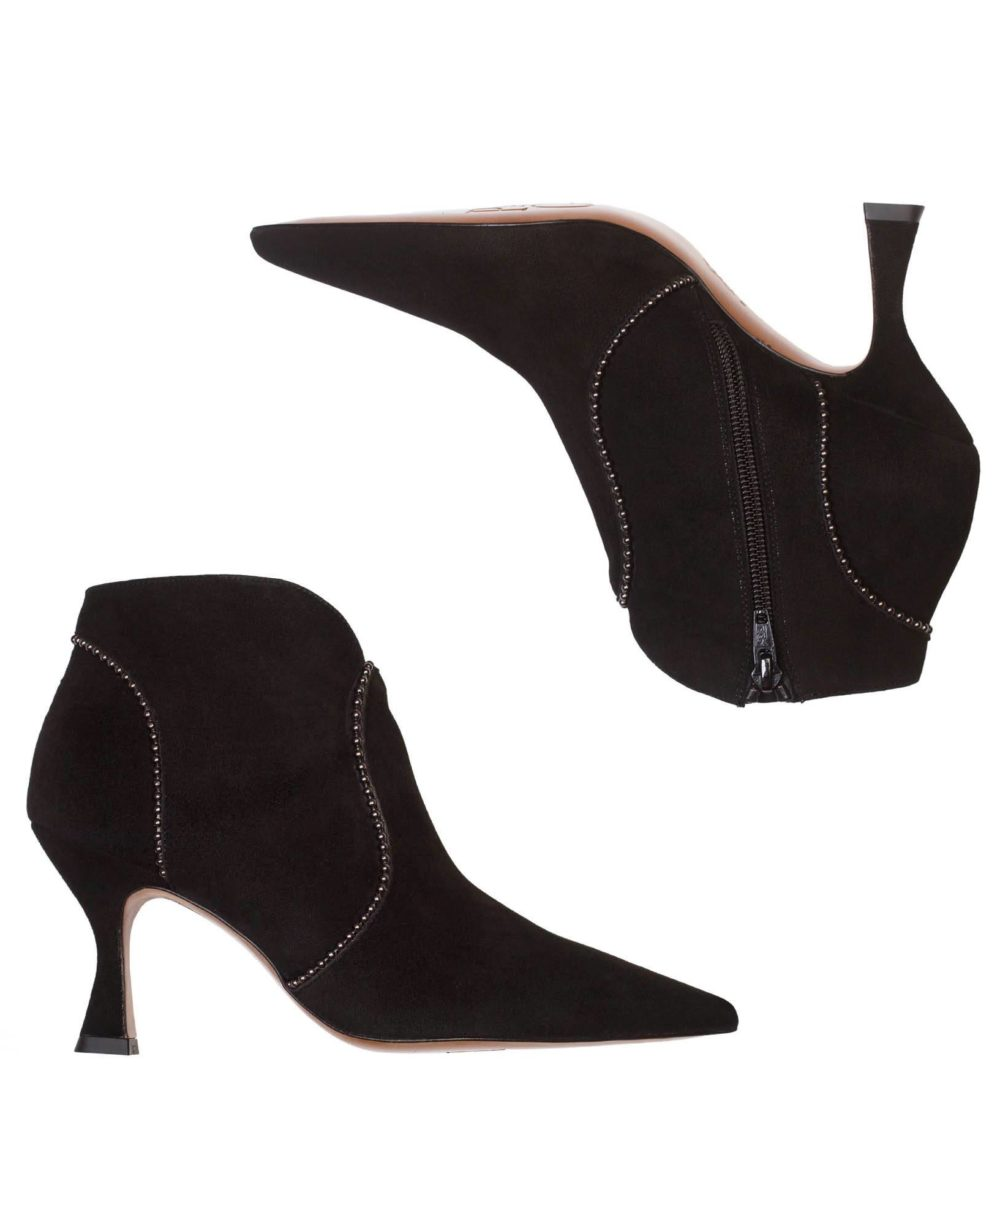 Leather Booties Paco Gil - PP-3816 Black Suede C